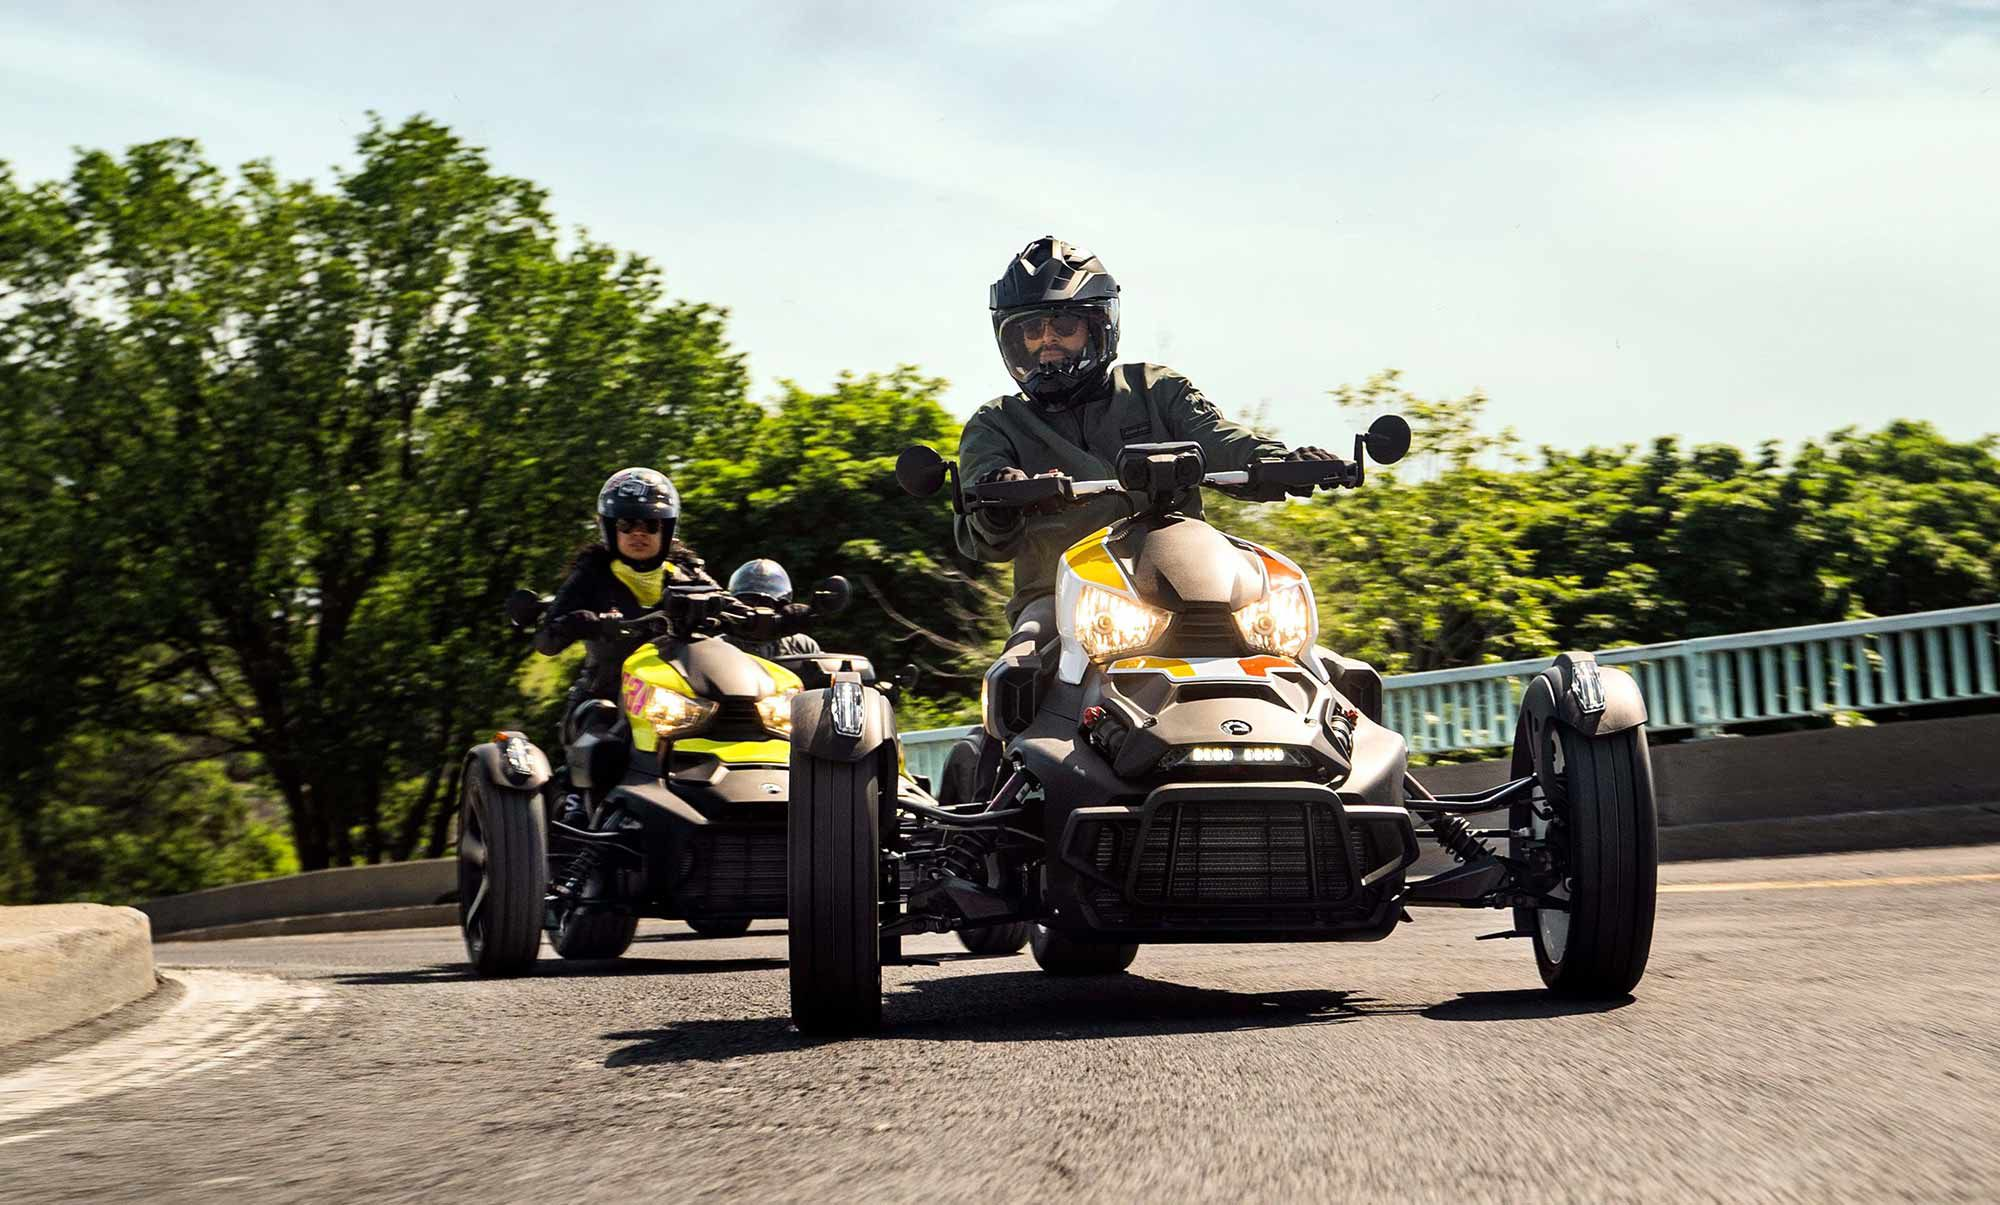 The Ryker Rally leads the charge for Can-Am's 2022 on-road lineup with a host of new upgrades including longer-travel suspension and more ground clearance.